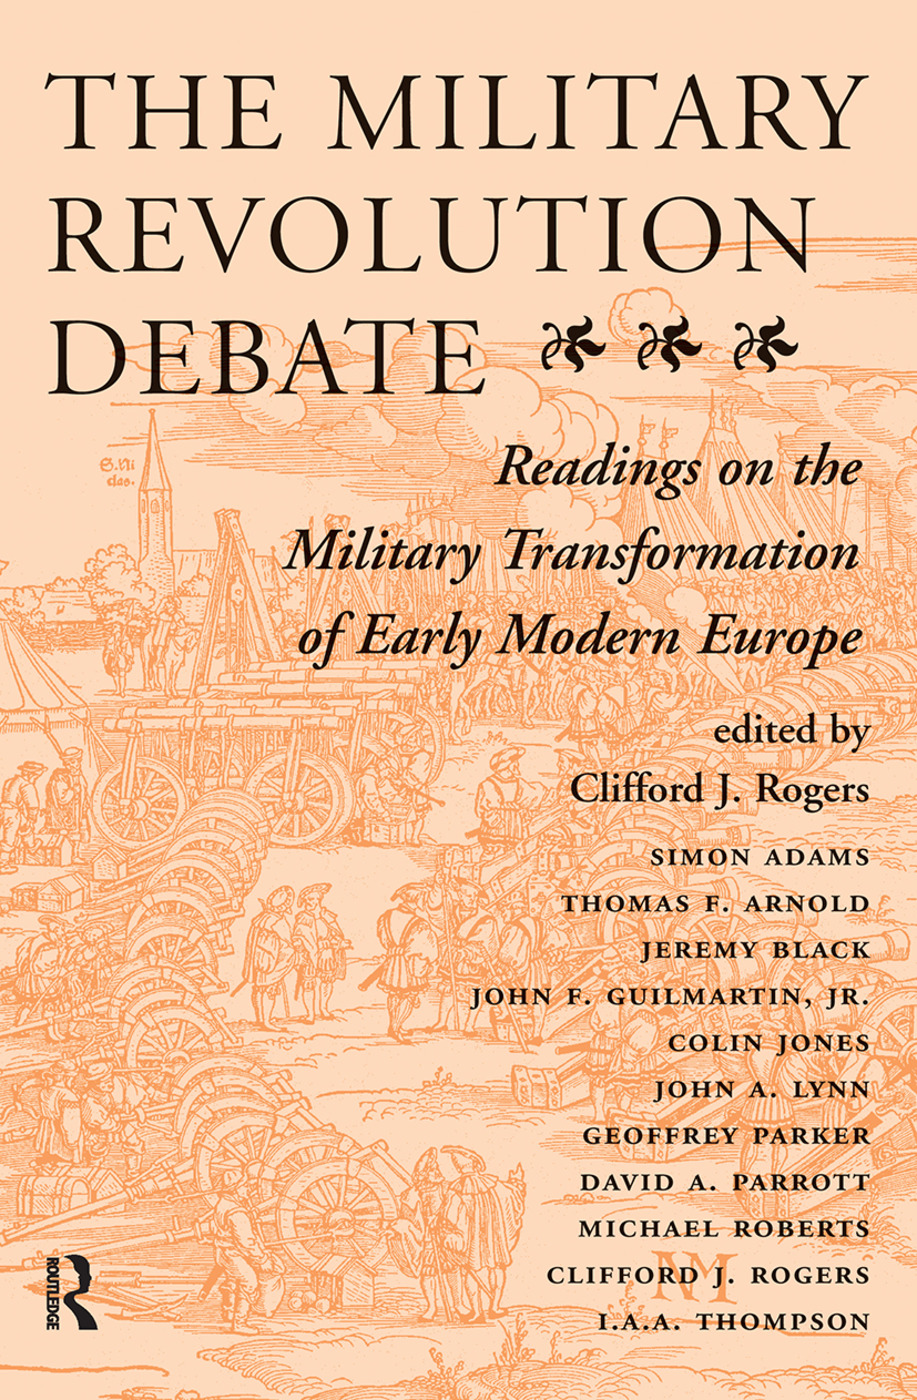 The Military Revolution Debate: Readings On The Military Transformation Of Early Modern Europe book cover